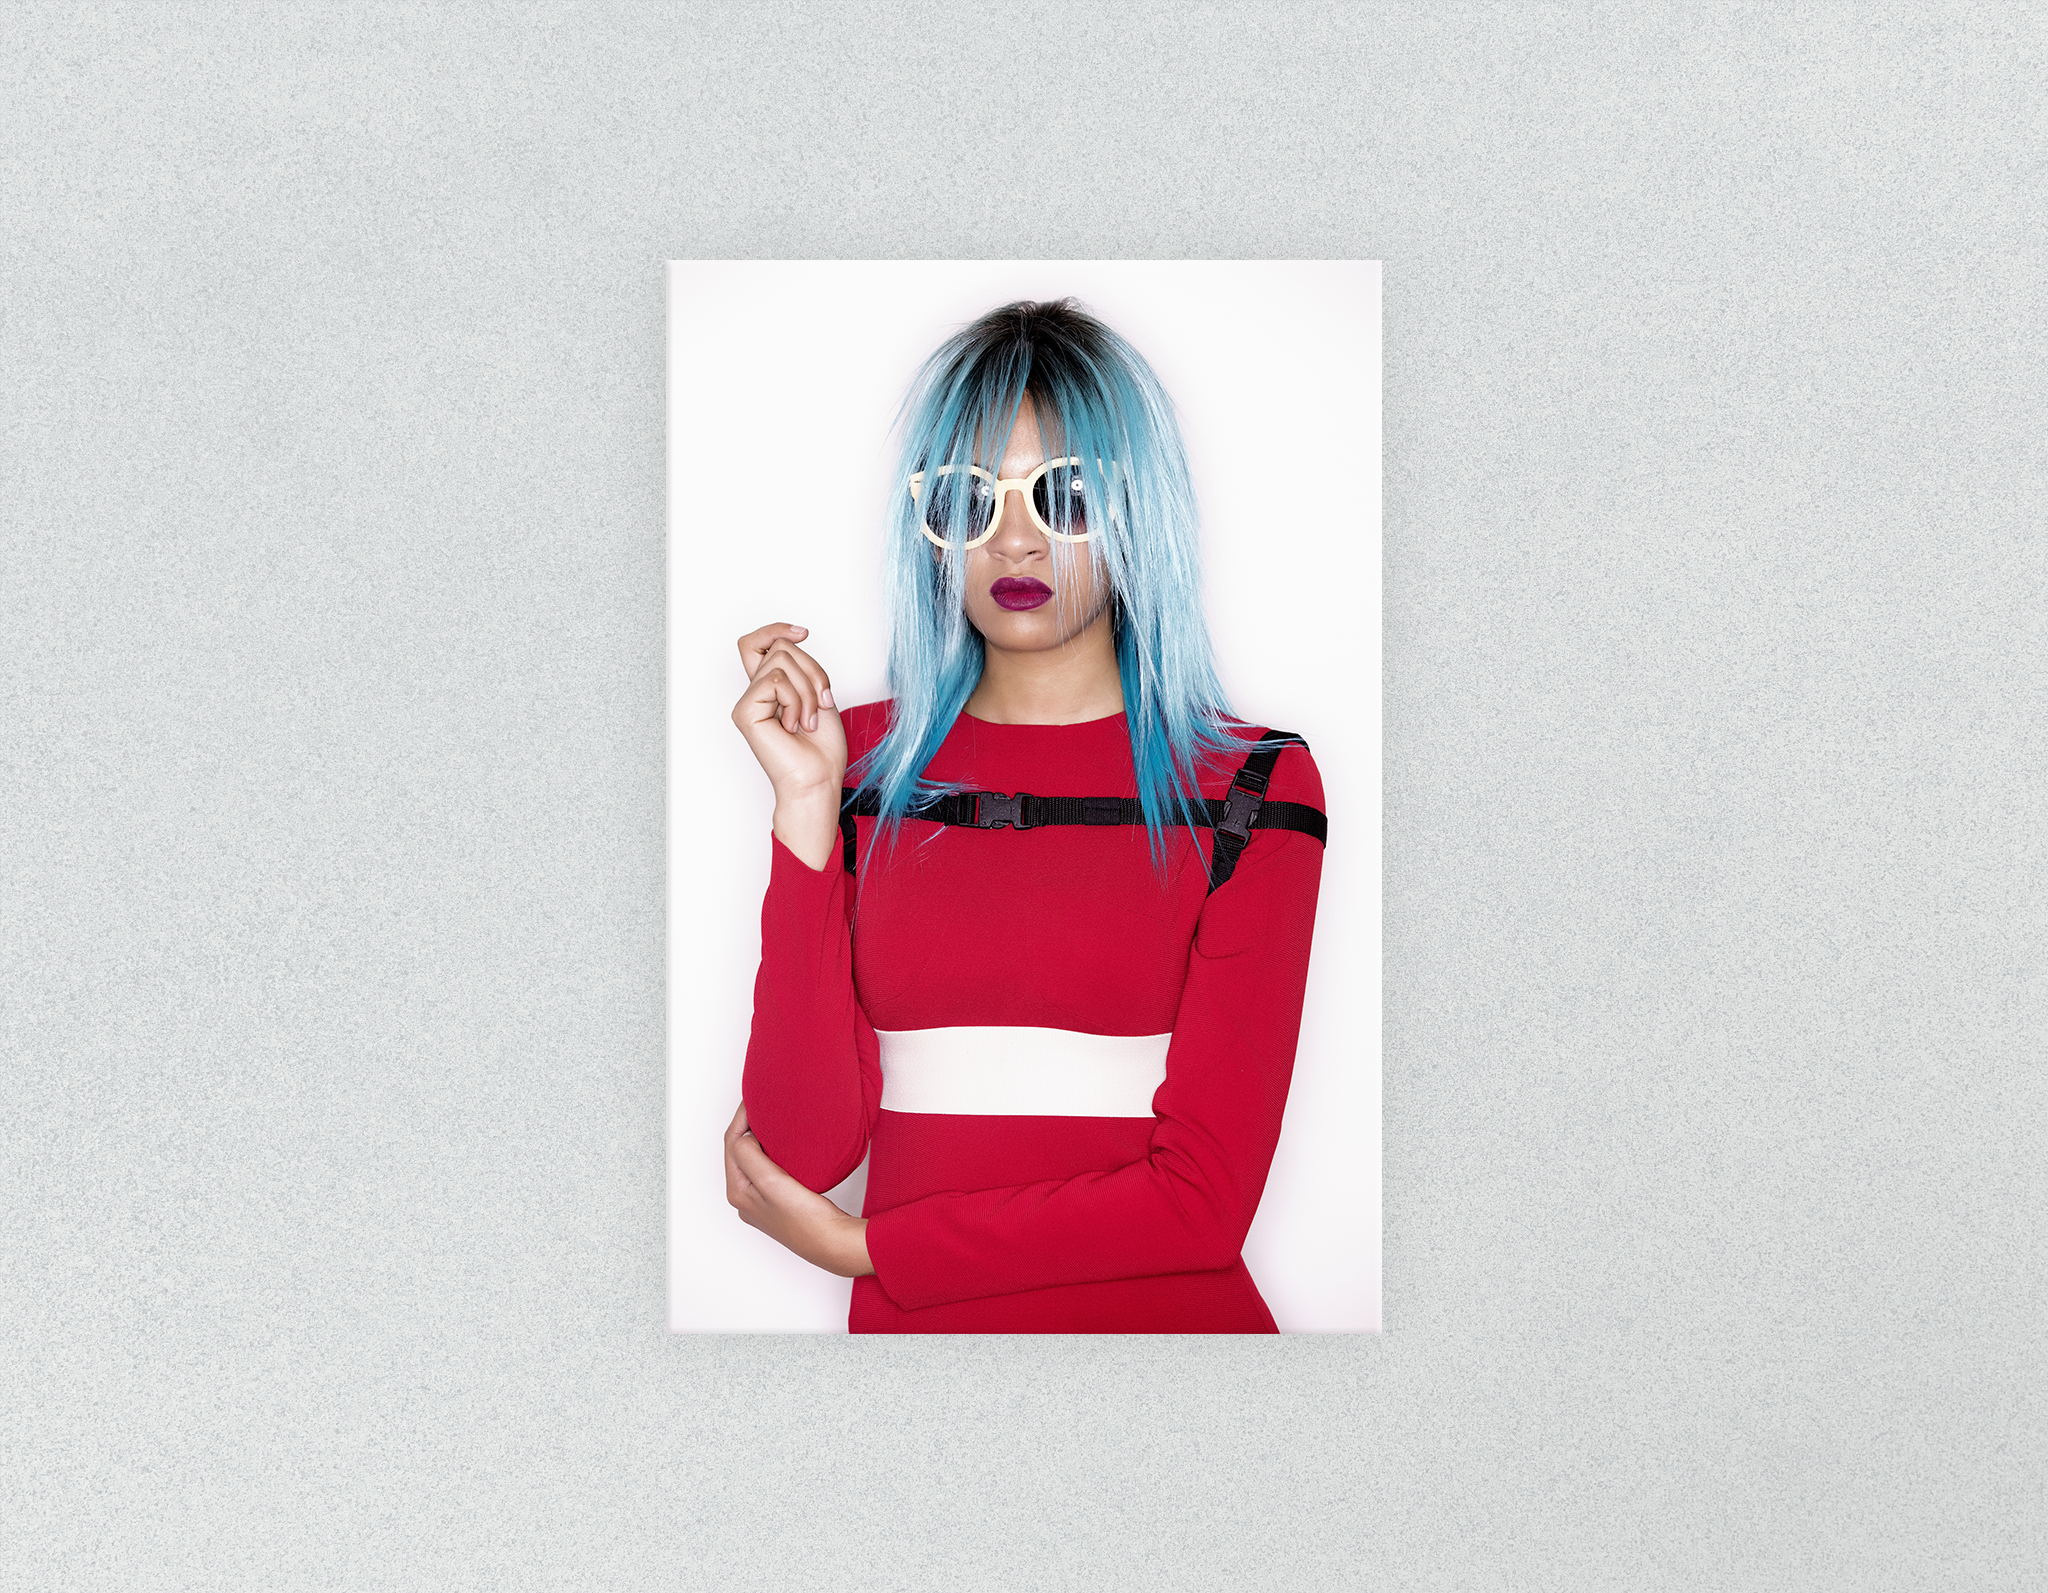 Salon Posters: Woman Front with Blue Bob Hairstyle in Red Dress